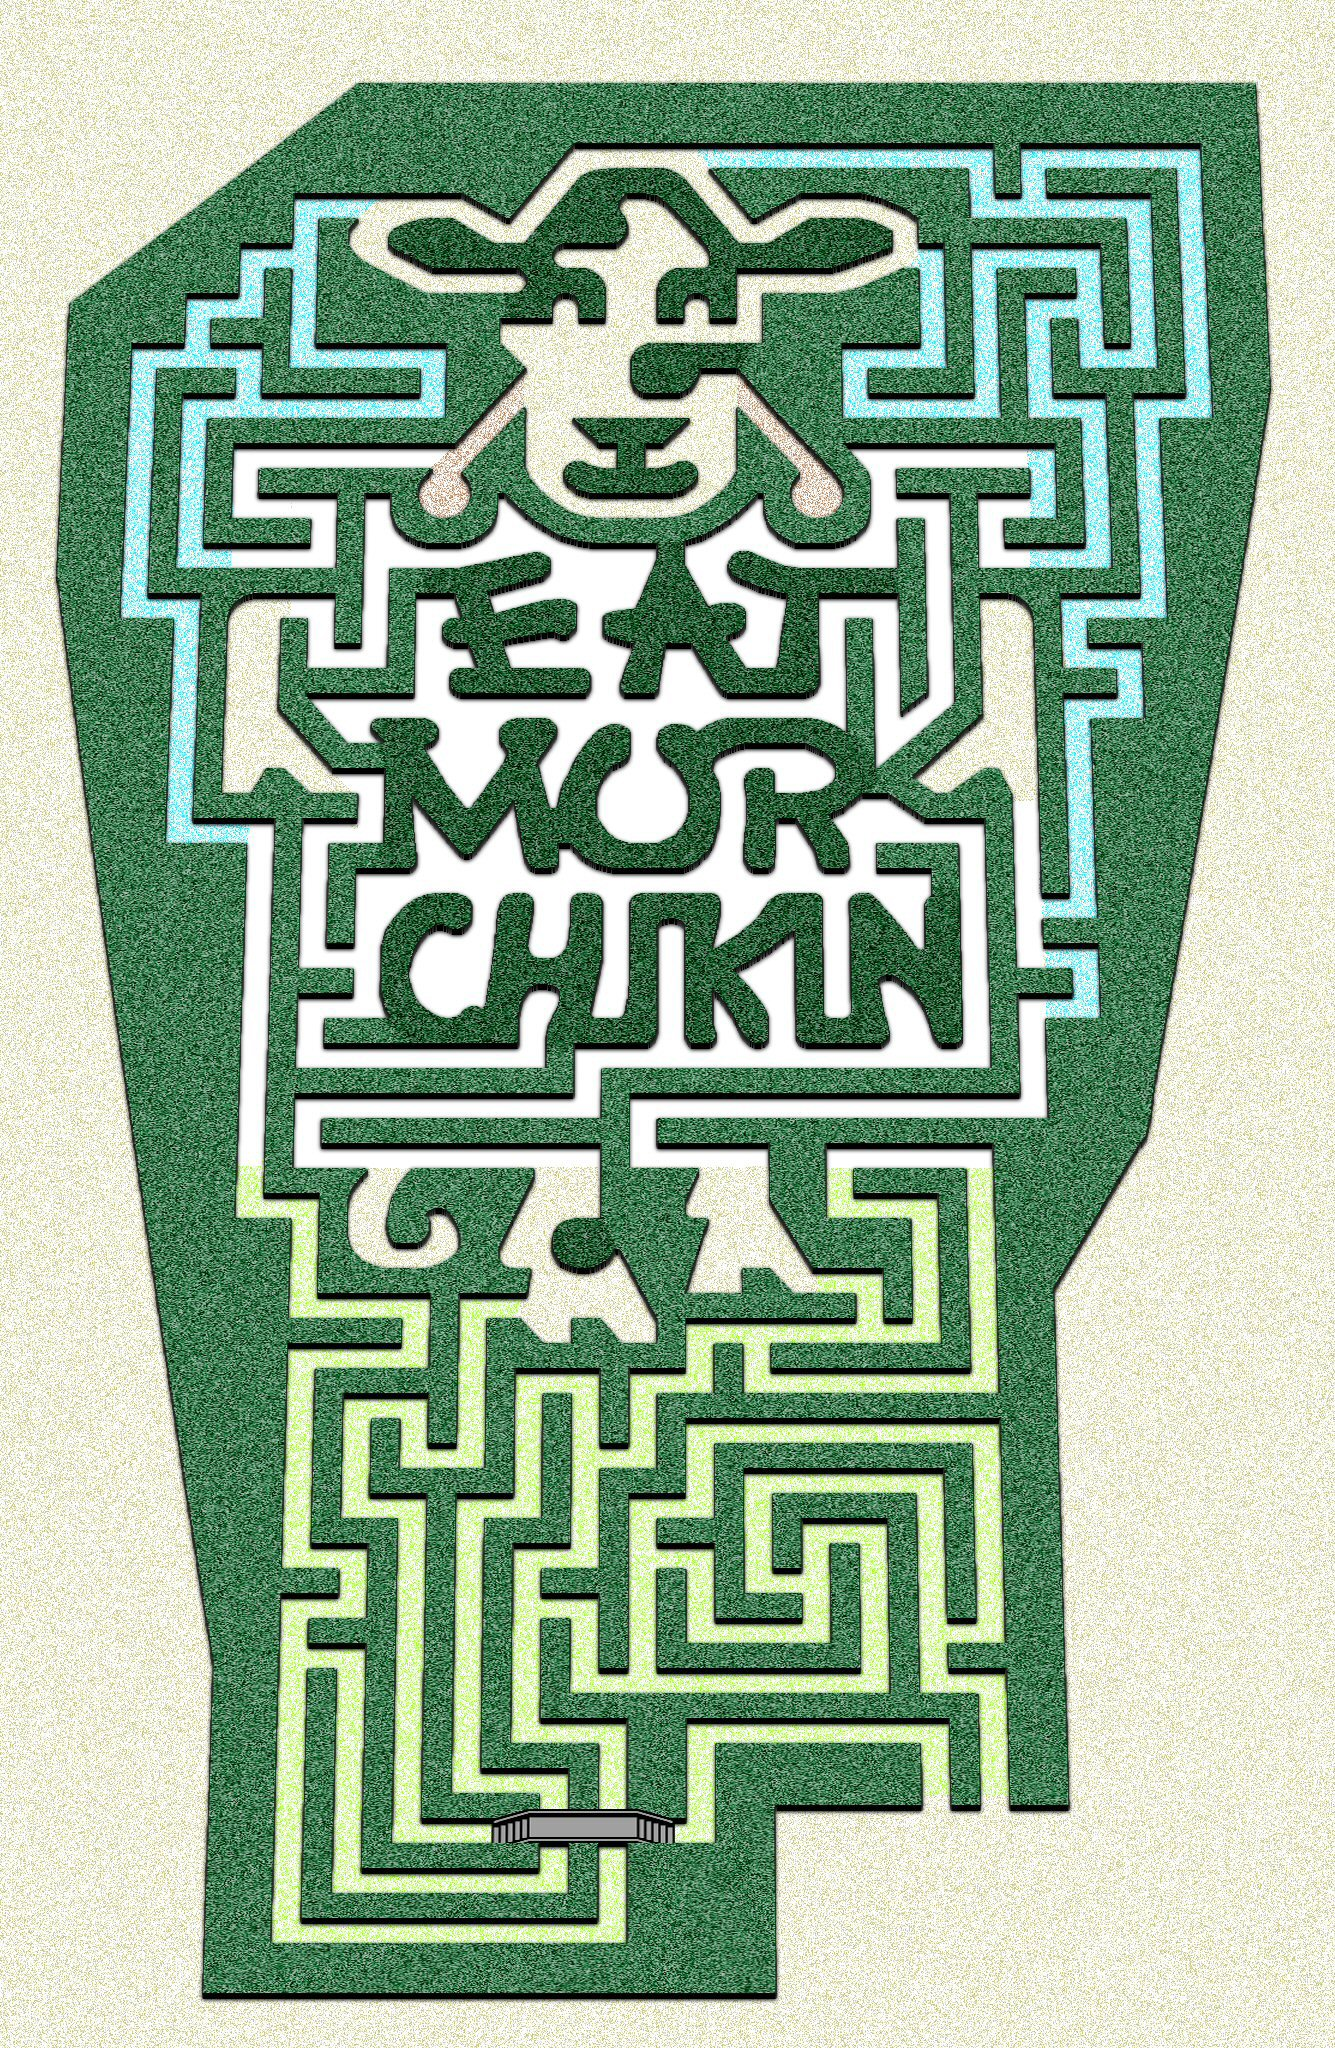 """Image of a Chik-fil-a themed corn maze that reads """"Eat Mor Chikn"""""""